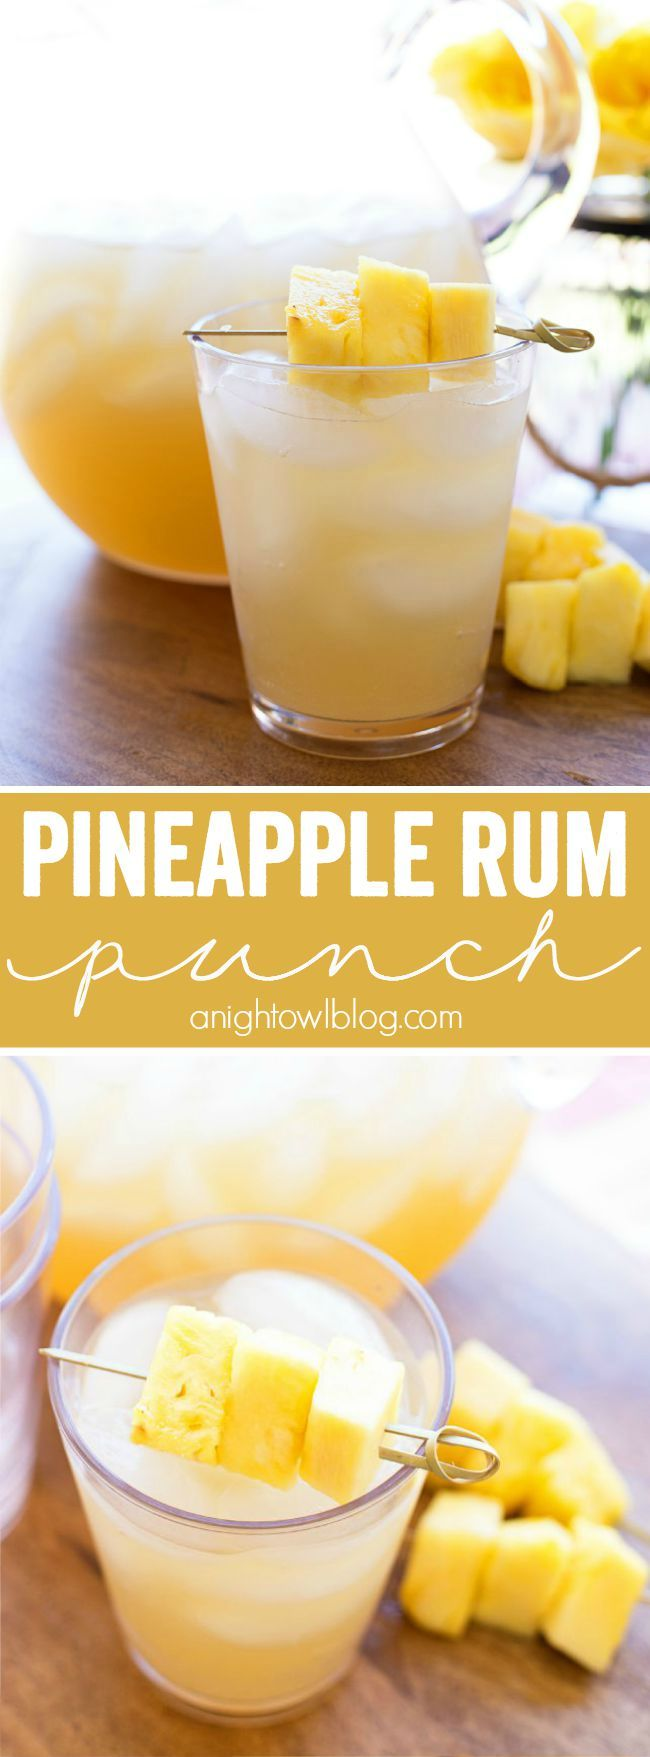 Pineapple Rum Punch – the perfect mix of tropical flavors in one amazing and easy to make party drink! #ad